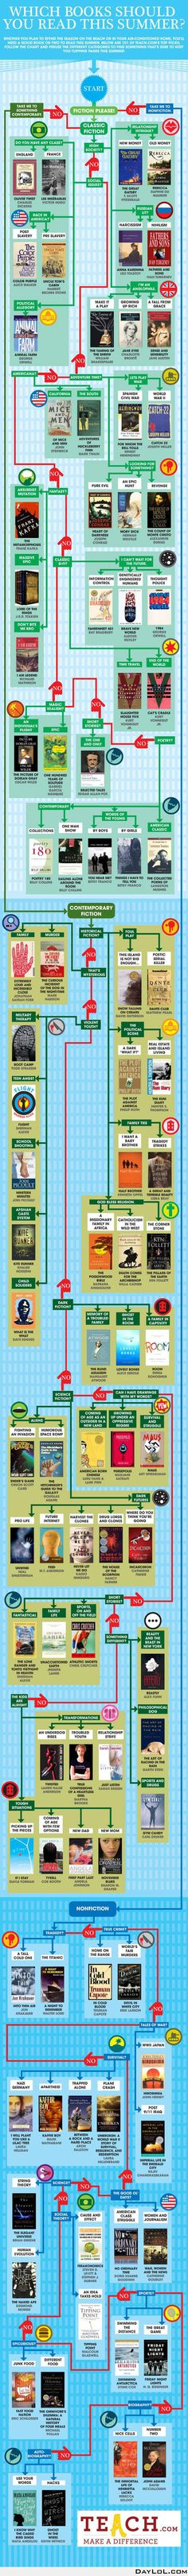 Which books should you read this summer?